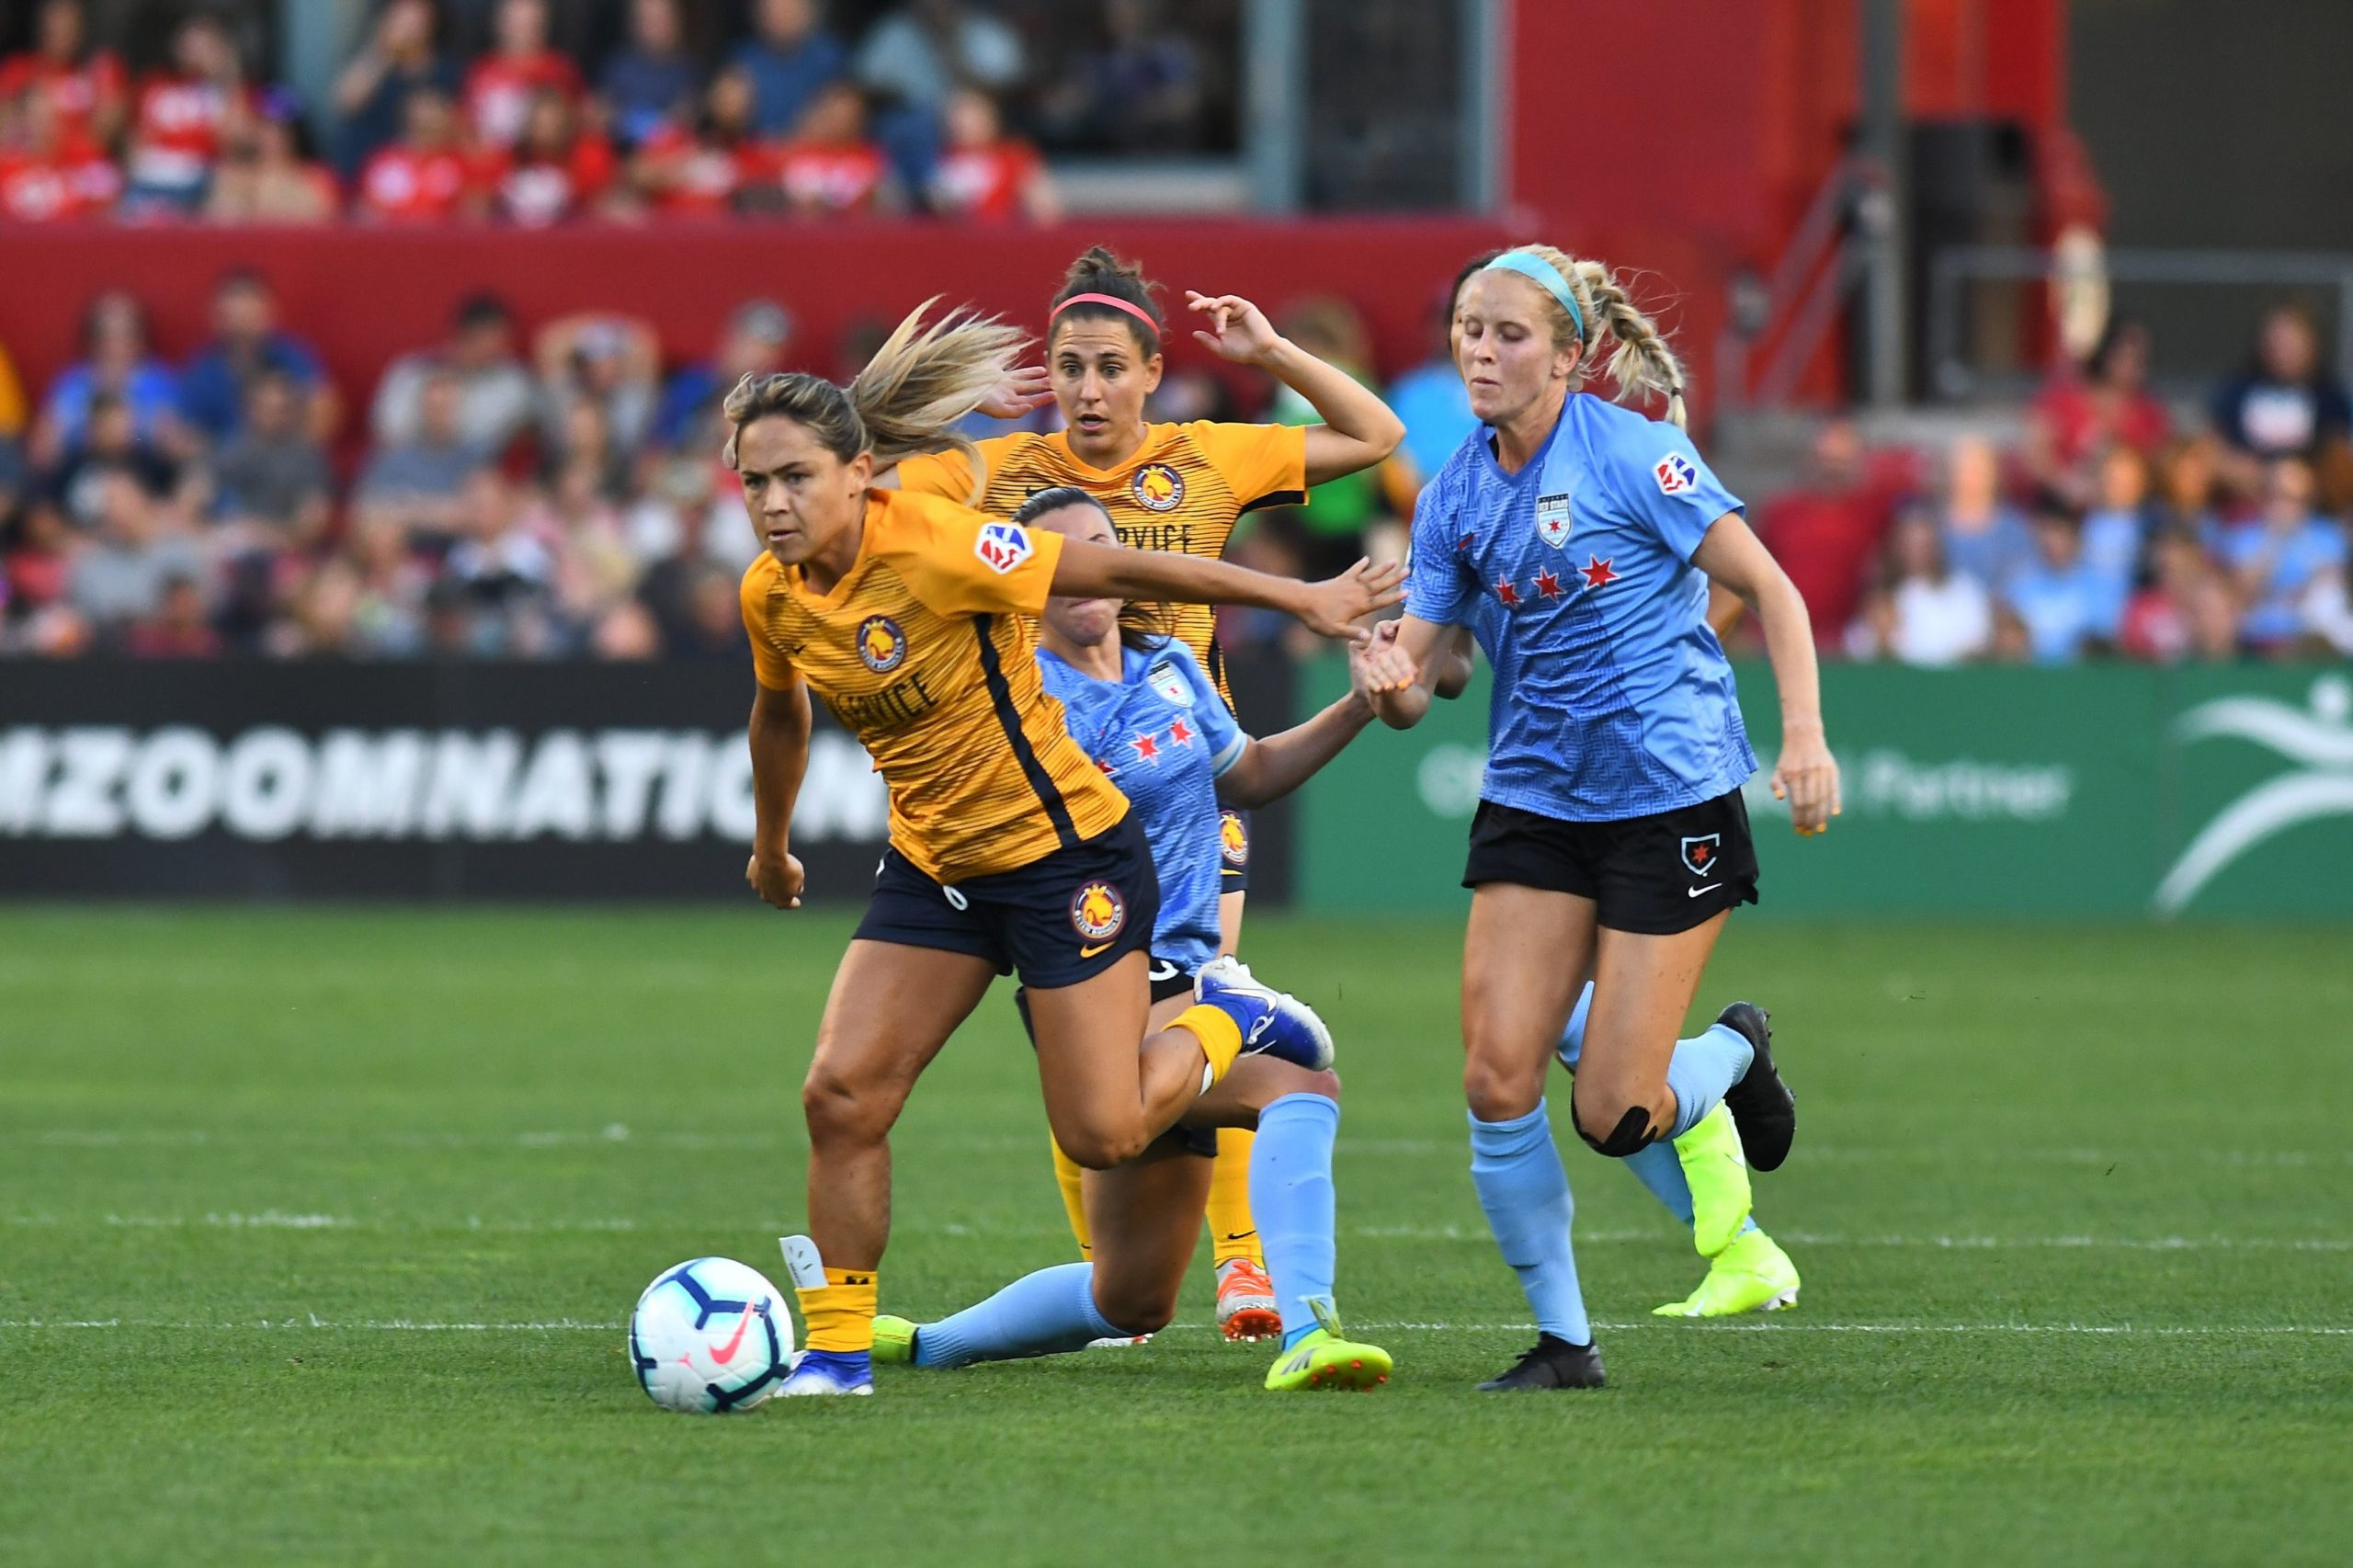 An NWSL match between Chicago Red Stars and Utah Royals FC at SeatGeek Stadium in Bridgeview, Illinois.